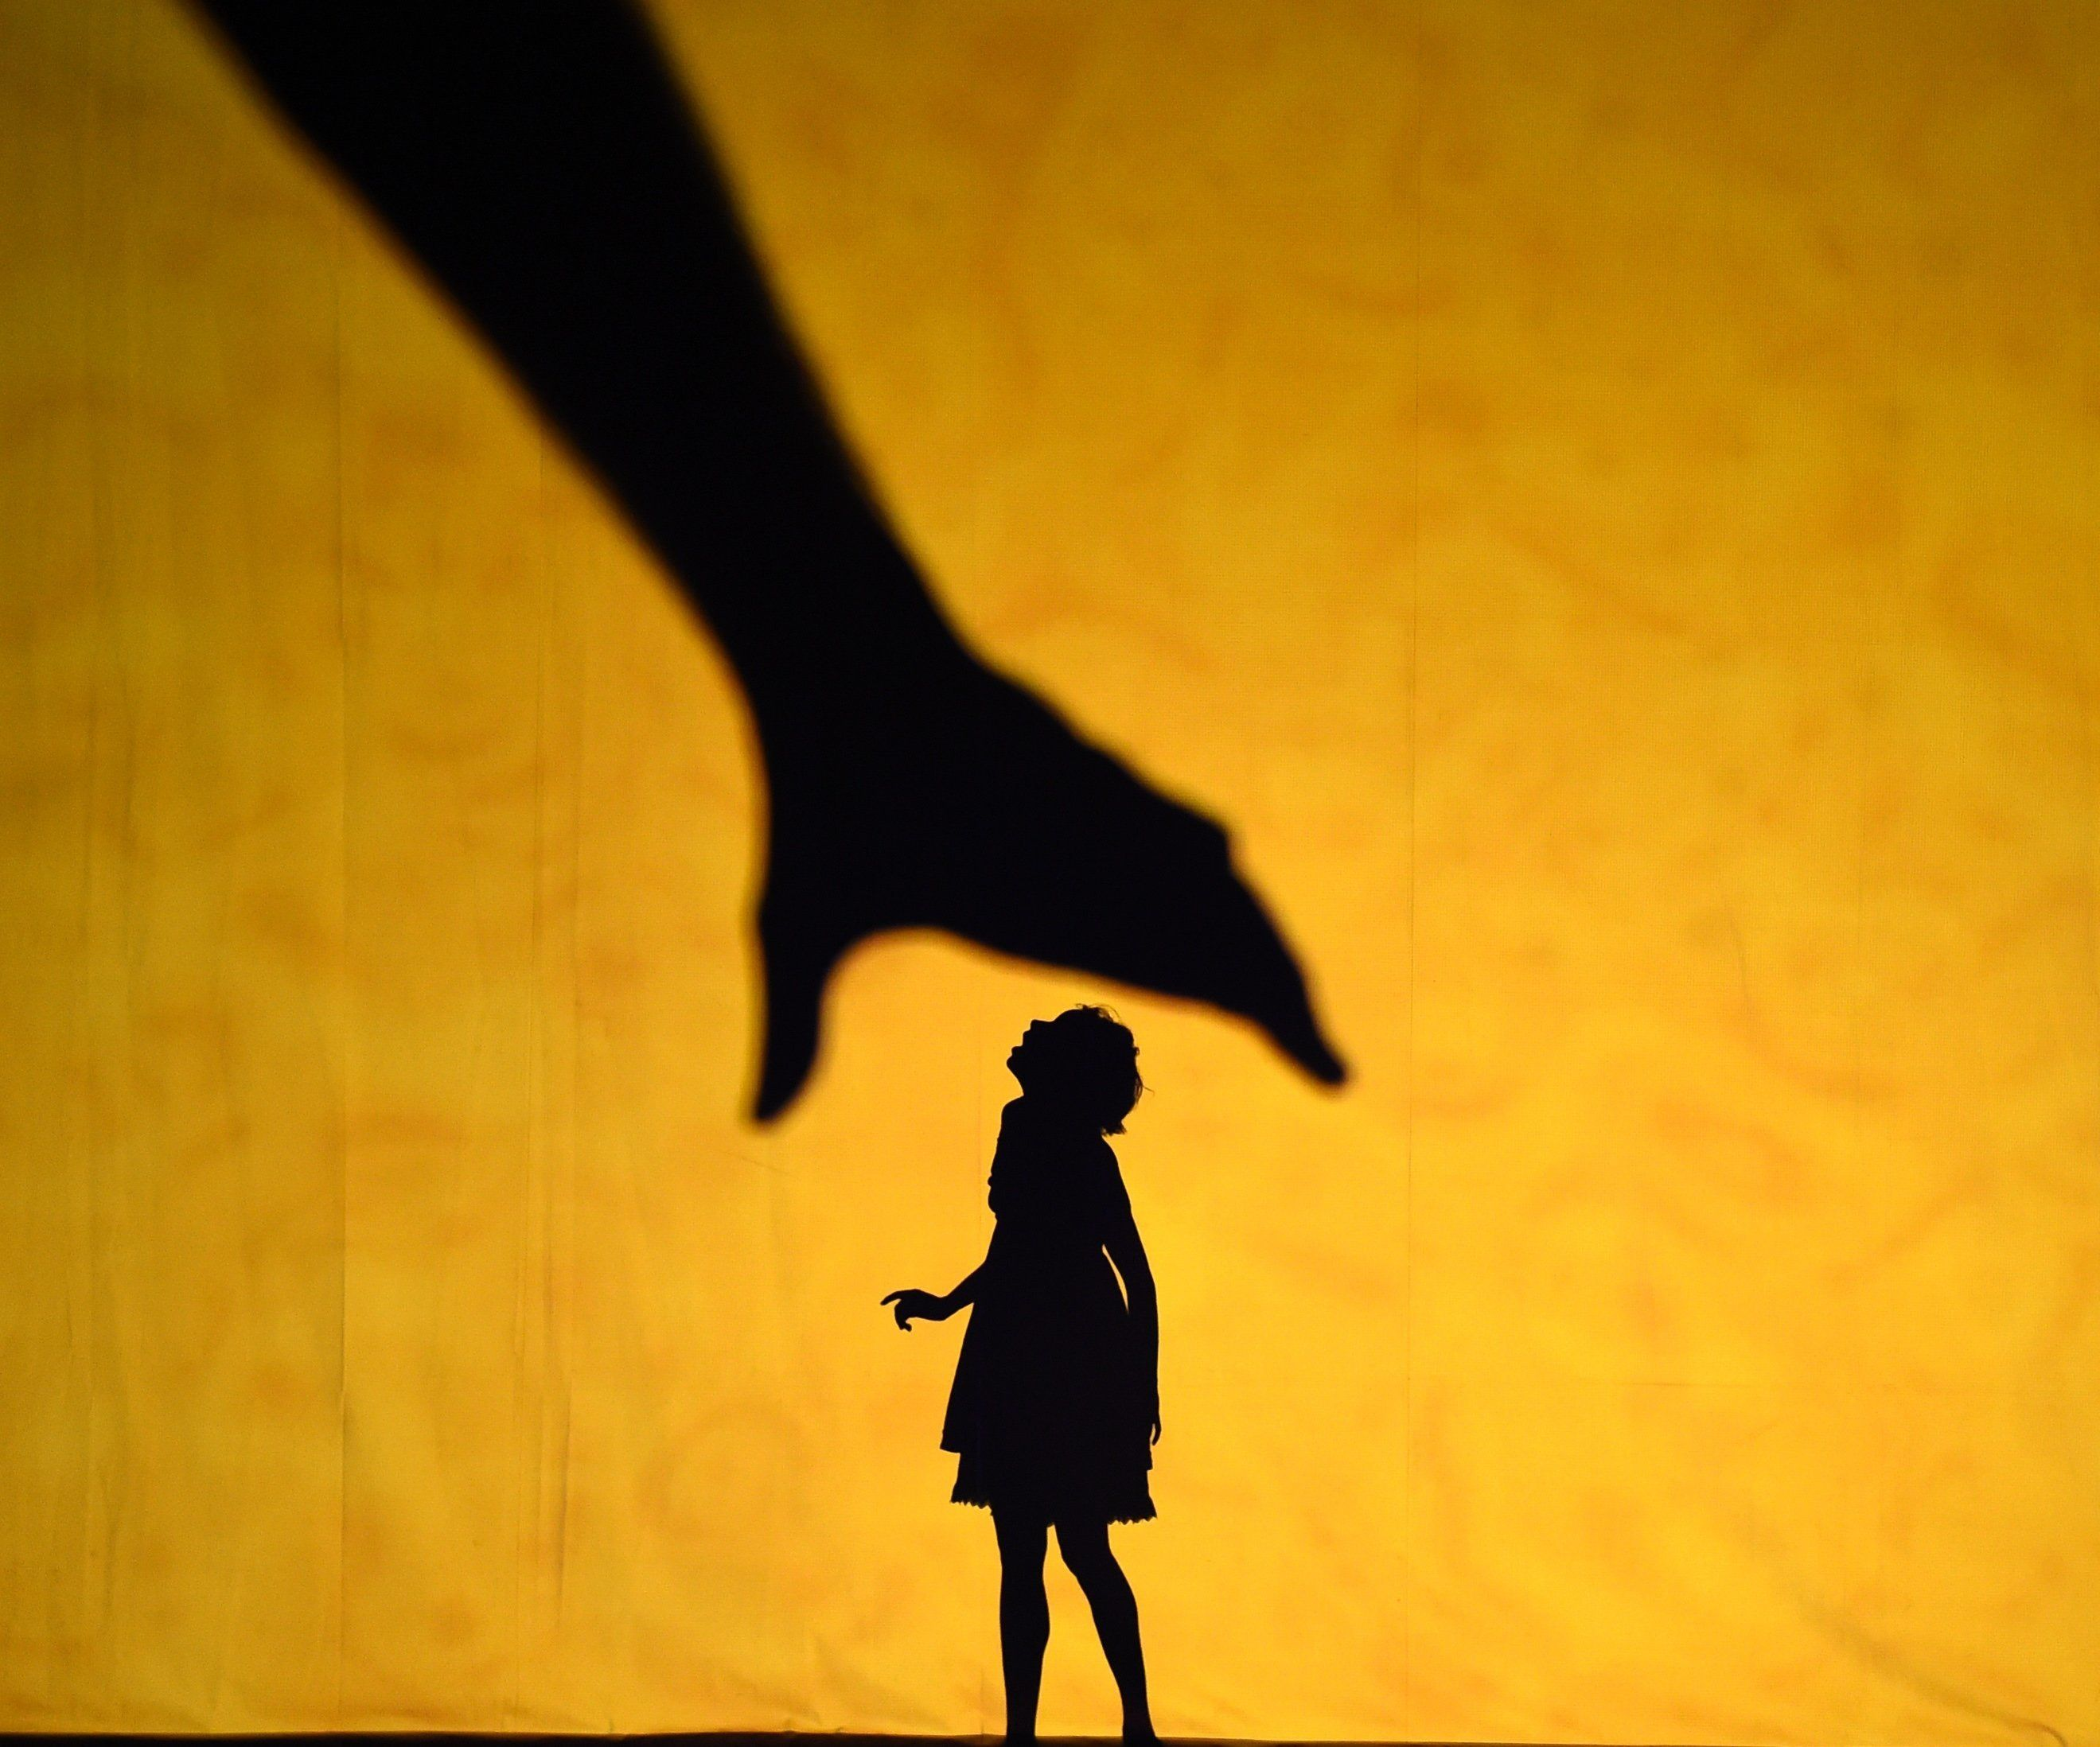 Dancers with Pilobolus perform a scene during a dress rehearsal for the American premiere of Piloboluss 'Shadowland'  at NYU Skirball Center for the Performing Arts November 20, 2015. The dancers uses shadow theater technology to create a mysterious universe where Pilobolus dancers transform into monsters, dogs, elephants, giants and more.         / AFP / TIMOTHY A. CLARY        (Photo credit should read TIMOTHY A. CLARY/AFP/Getty Images)